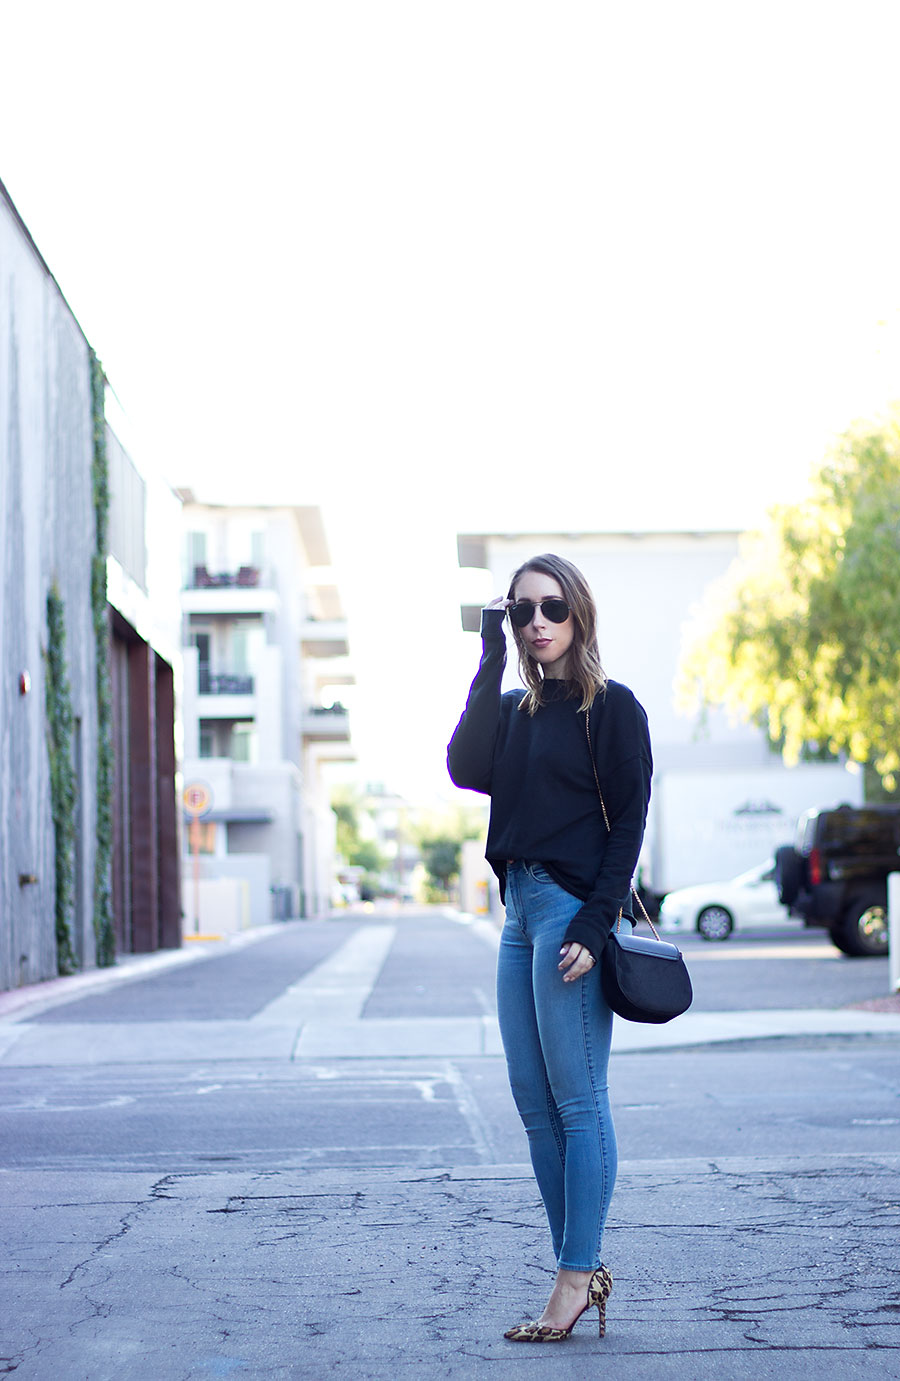 High rise jeans, affordable denim, affordable high rise jeans, affordable jeans for women, high rise jeans for women, leopard heels, leopard pumps, Sam Edelman leopard pumps, Abercrombie & Fitch denim, Abercrombie & Fitch jeans, black sweatshirt, casual fall fashion, women's fall fashion, how to style a sweatshirt, high rise jeans outfit, how to wear high rise jeans, how to style high rise jeans, what to wear with leopard heels, how to style leopard heels